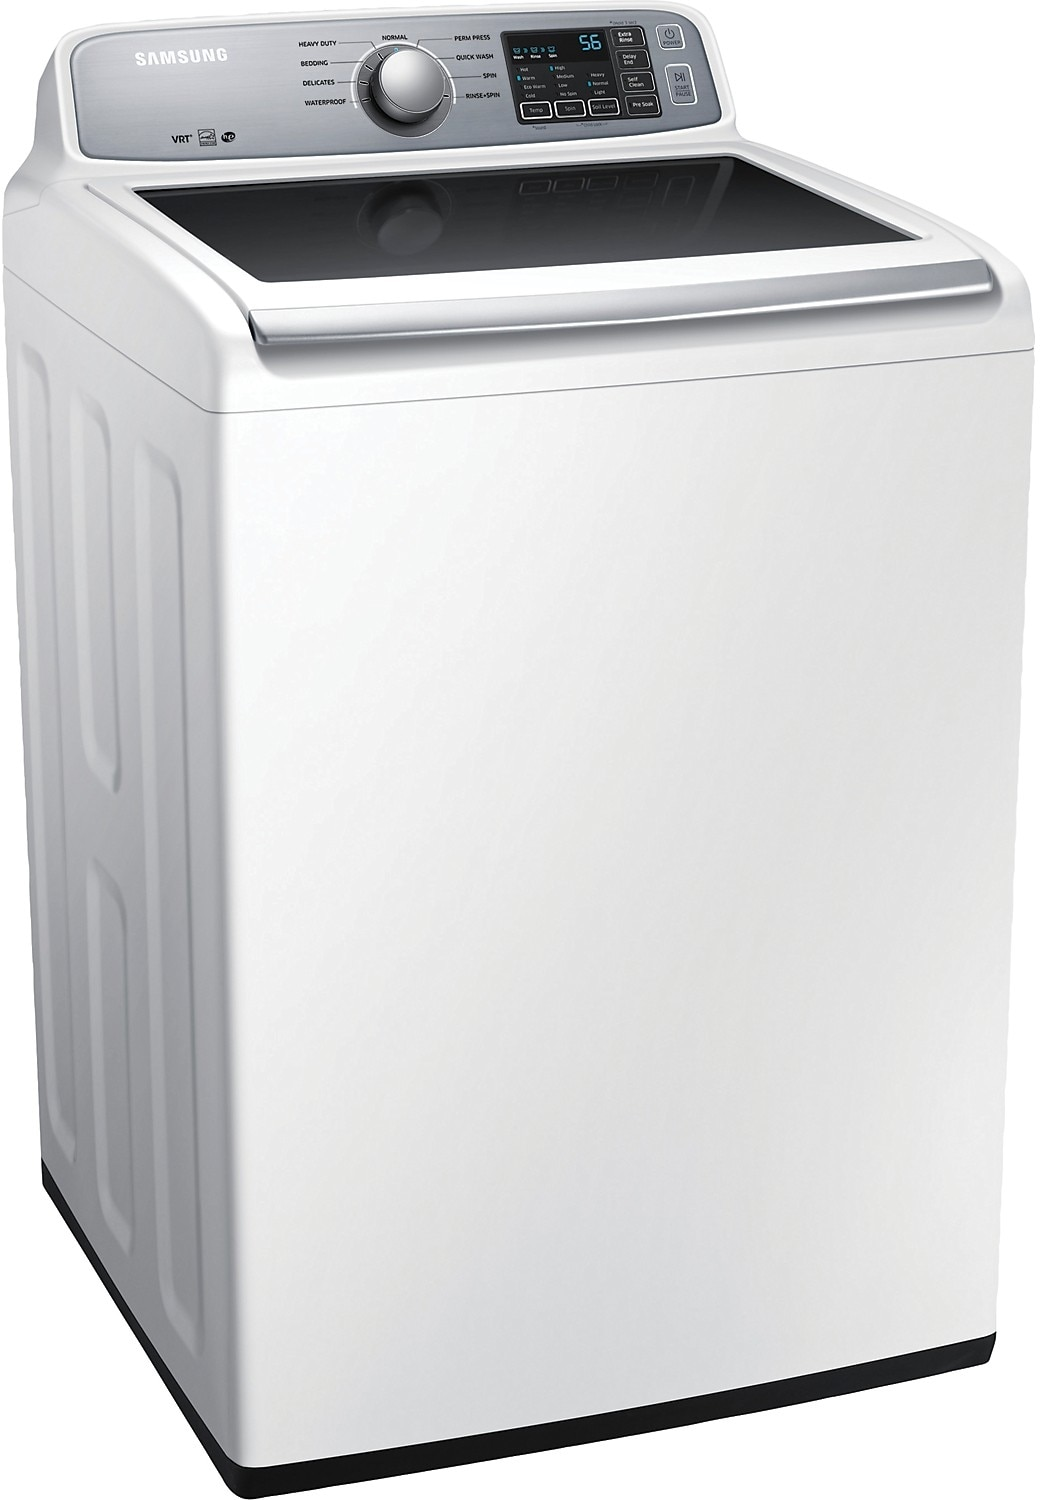 samsung top load washer samsung 5 2 cu ft large capacity top load washer white 12619